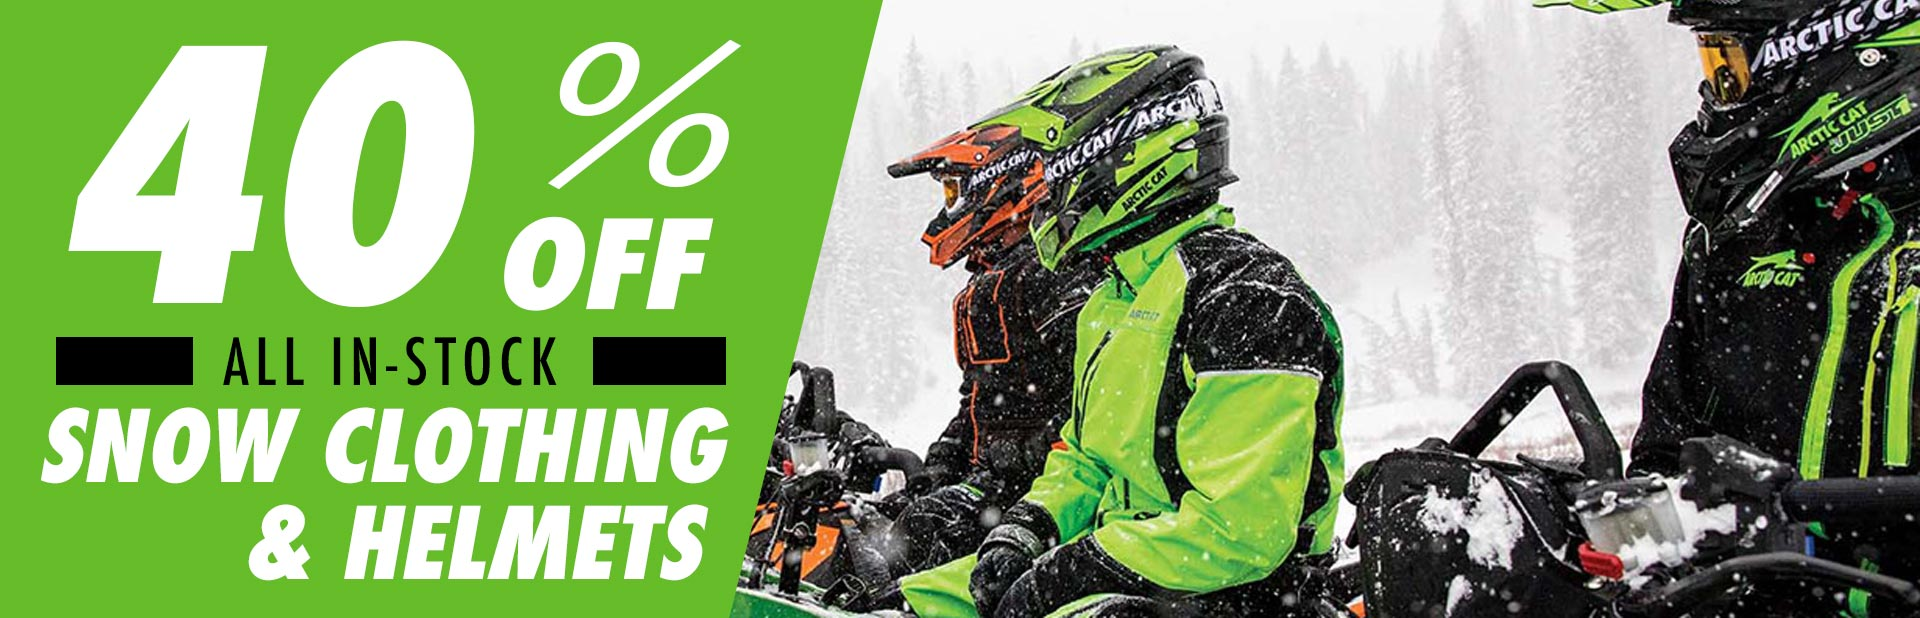 40% off all in-stock snow clothing and helmets